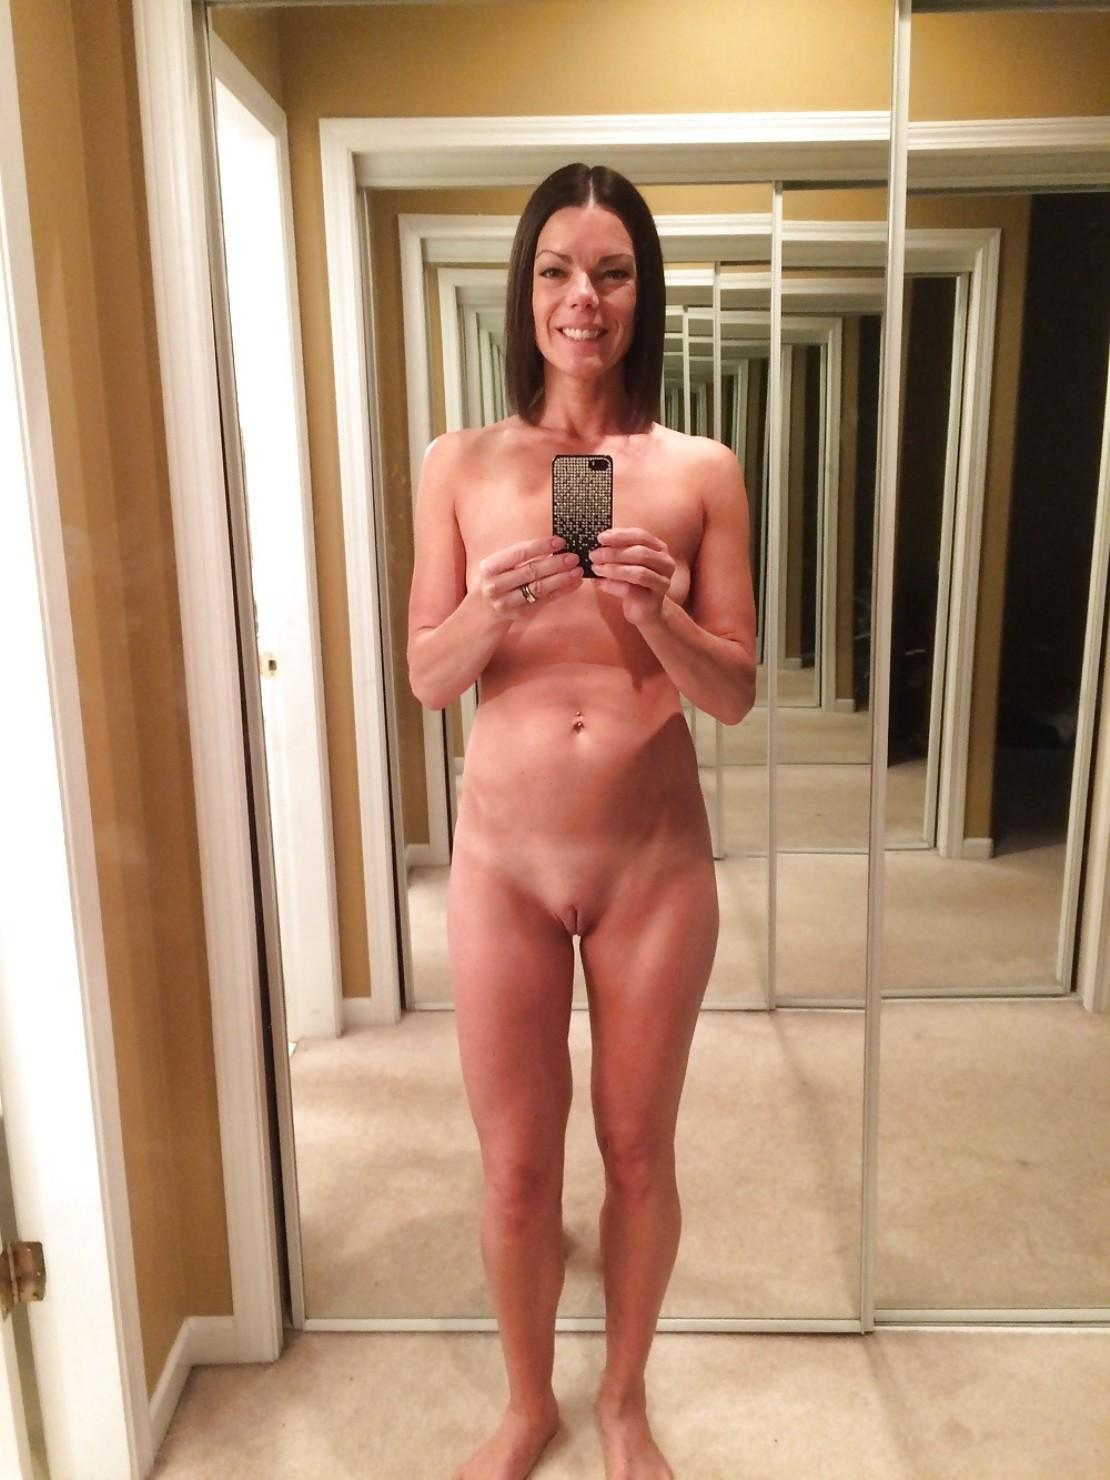 Cute slim mom takes self shots in a mirror while getting naked. Hot amateur wife take self shots of her small tits and bald pussy